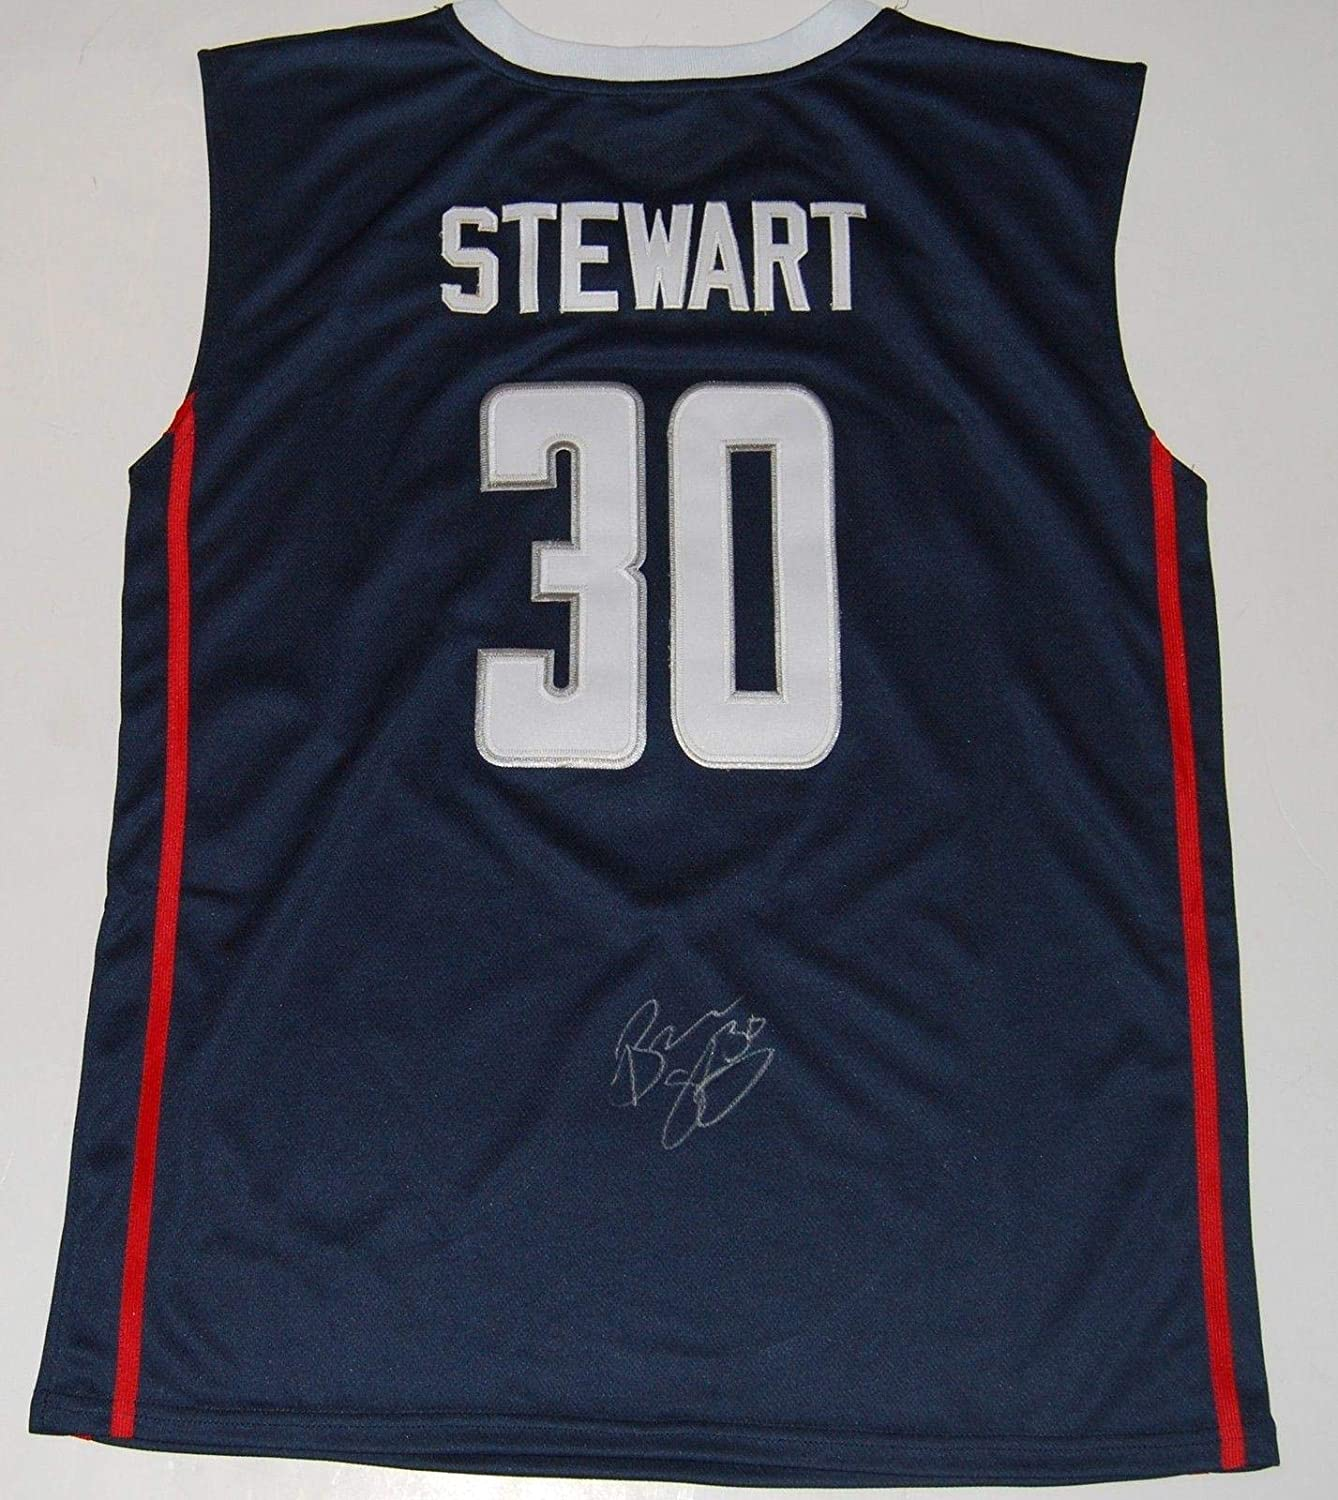 BREANNA STEWART signed (UCONN HUSKIES) basketball jersey *SEATTLE STORM* W/COA - Autographed College Basketballs Sports Memorabilia